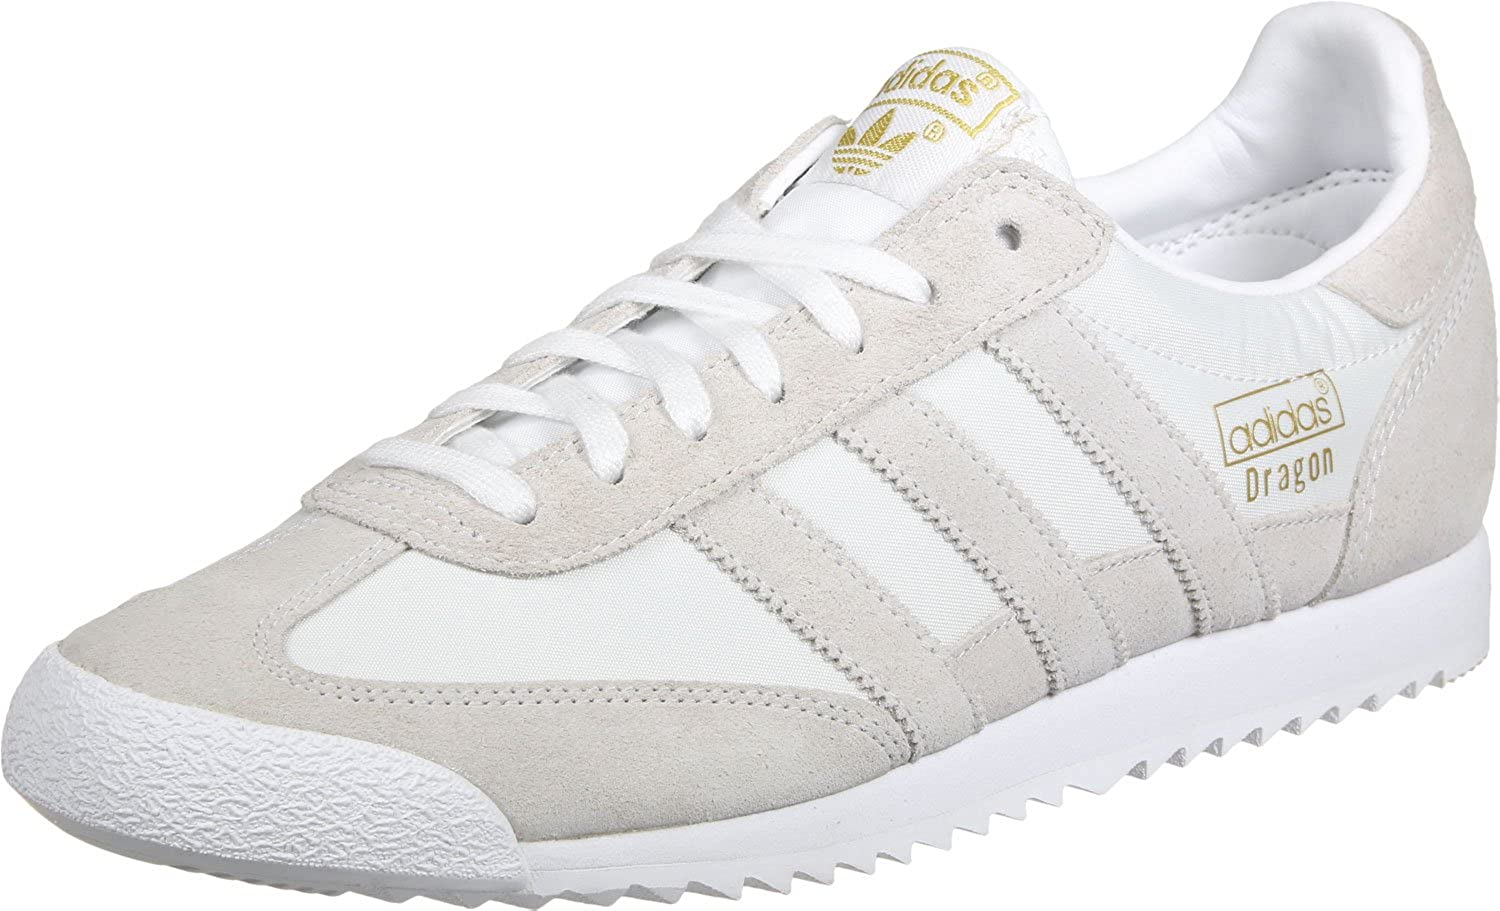 adidas Dragon OG, Sneakers Basses Homme : Amazon.fr: Chaussures et ...